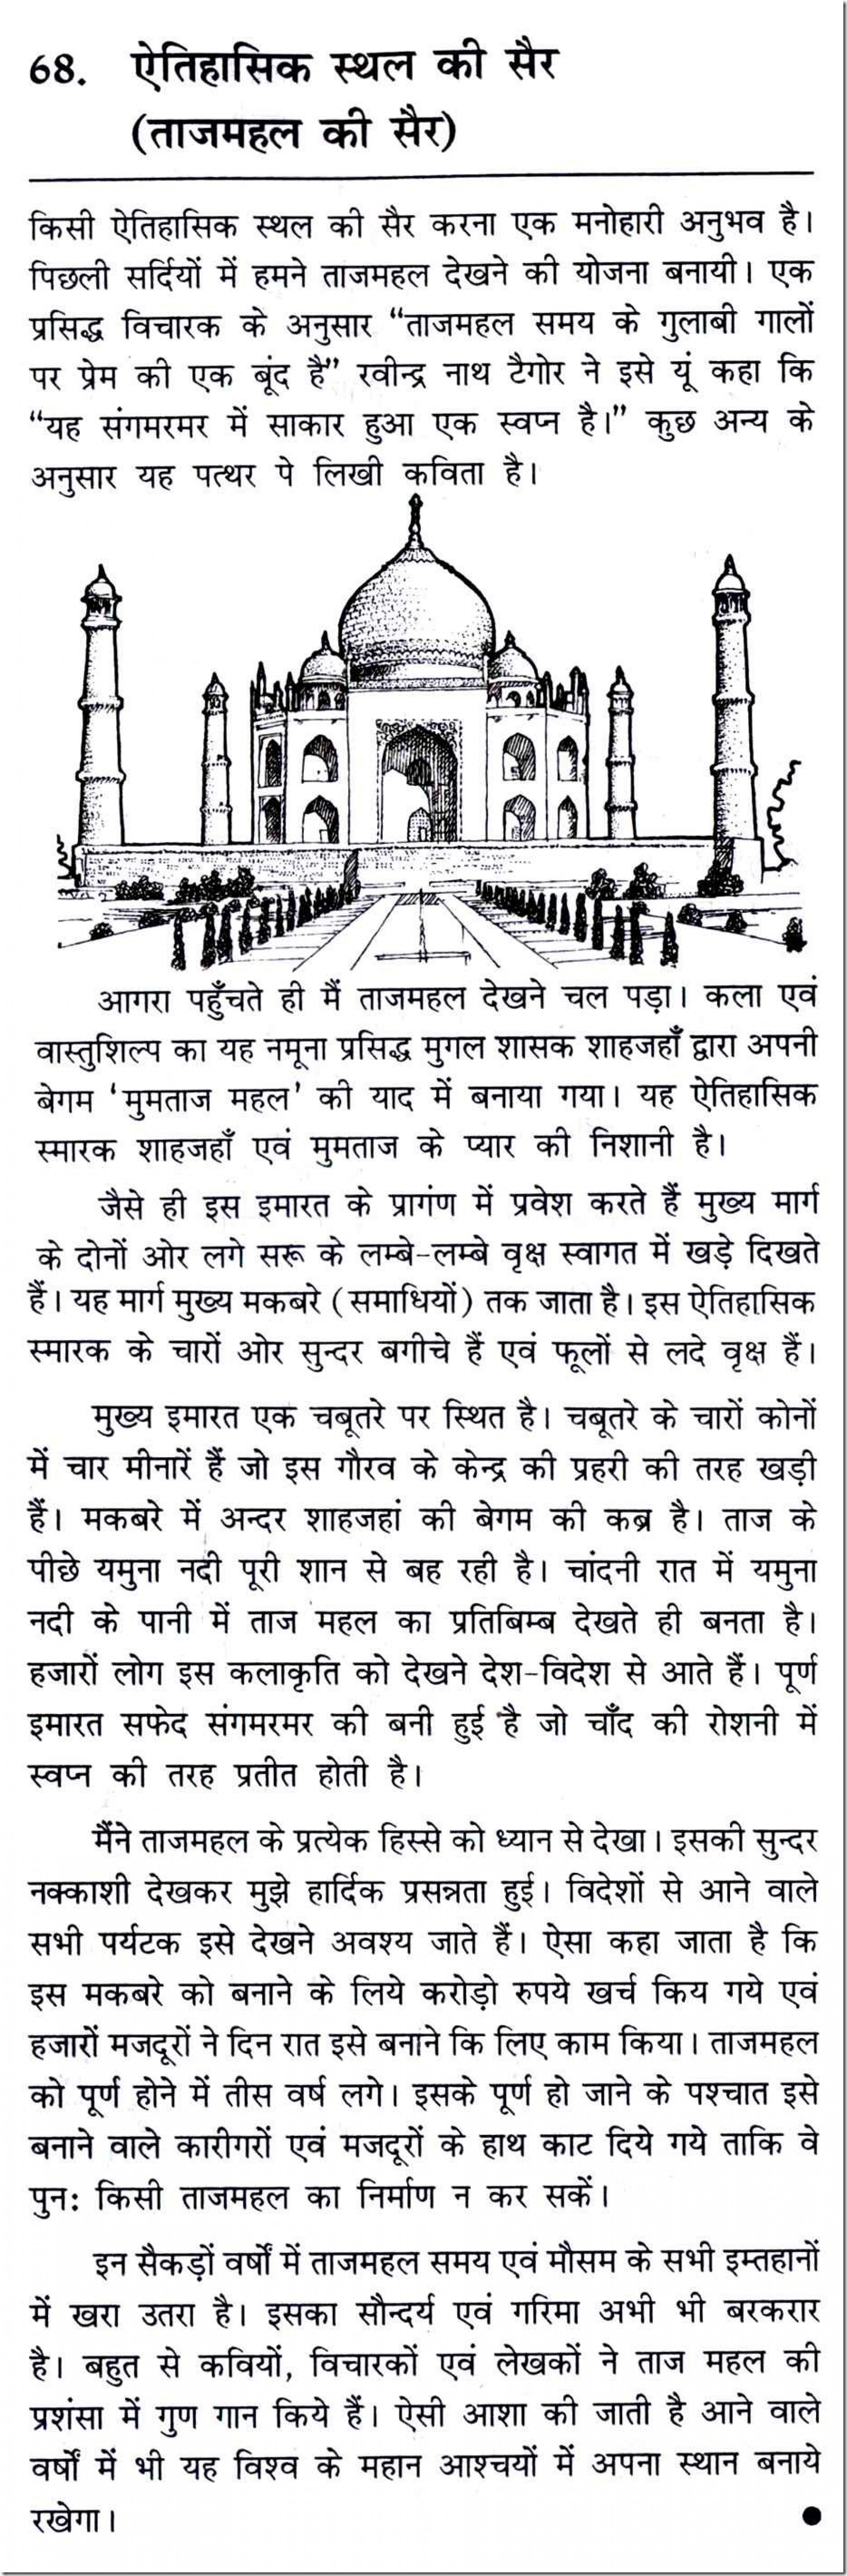 004 10070 Thumb Essay Example My Favourite Place In Surprising India Favorite Tourist Hindi 1920